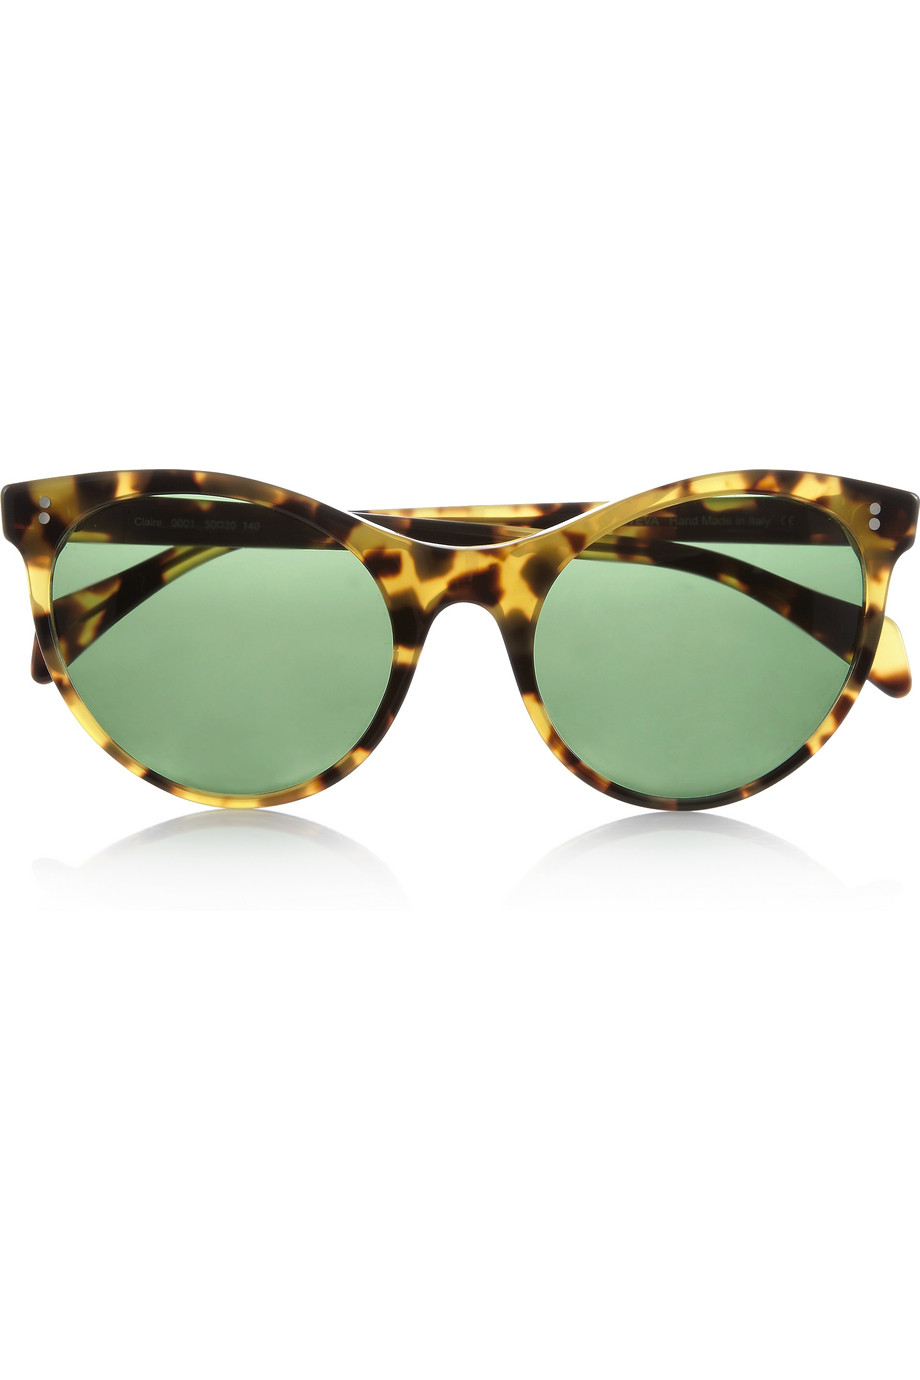 We love a great pair of shades like these to give instant glam on the go.  Illesteva Claire Cat Eye Tortoiseshell Acetate Sunglasses ($220)